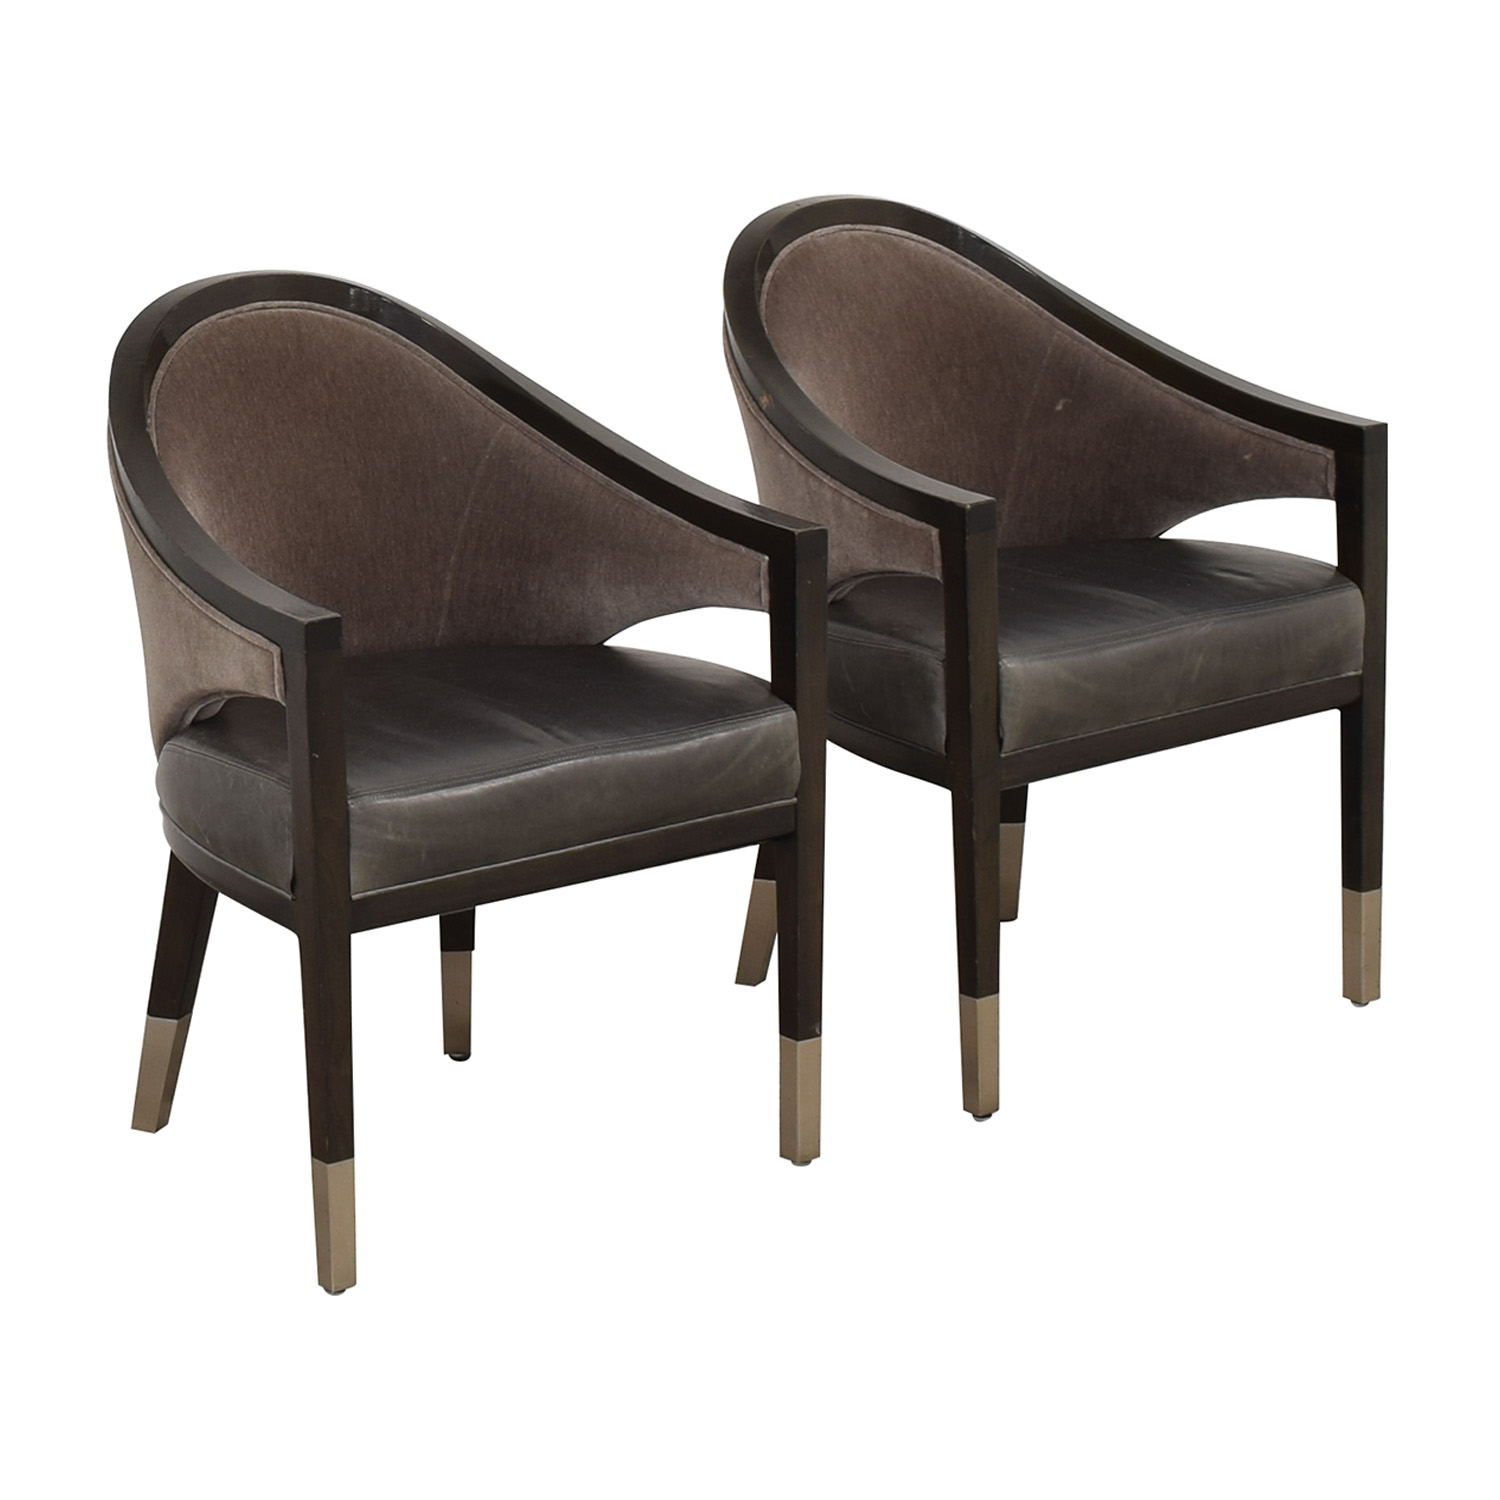 Allied Form Works Allied Works Eleven Madison Park Dining Room Chairs second hand